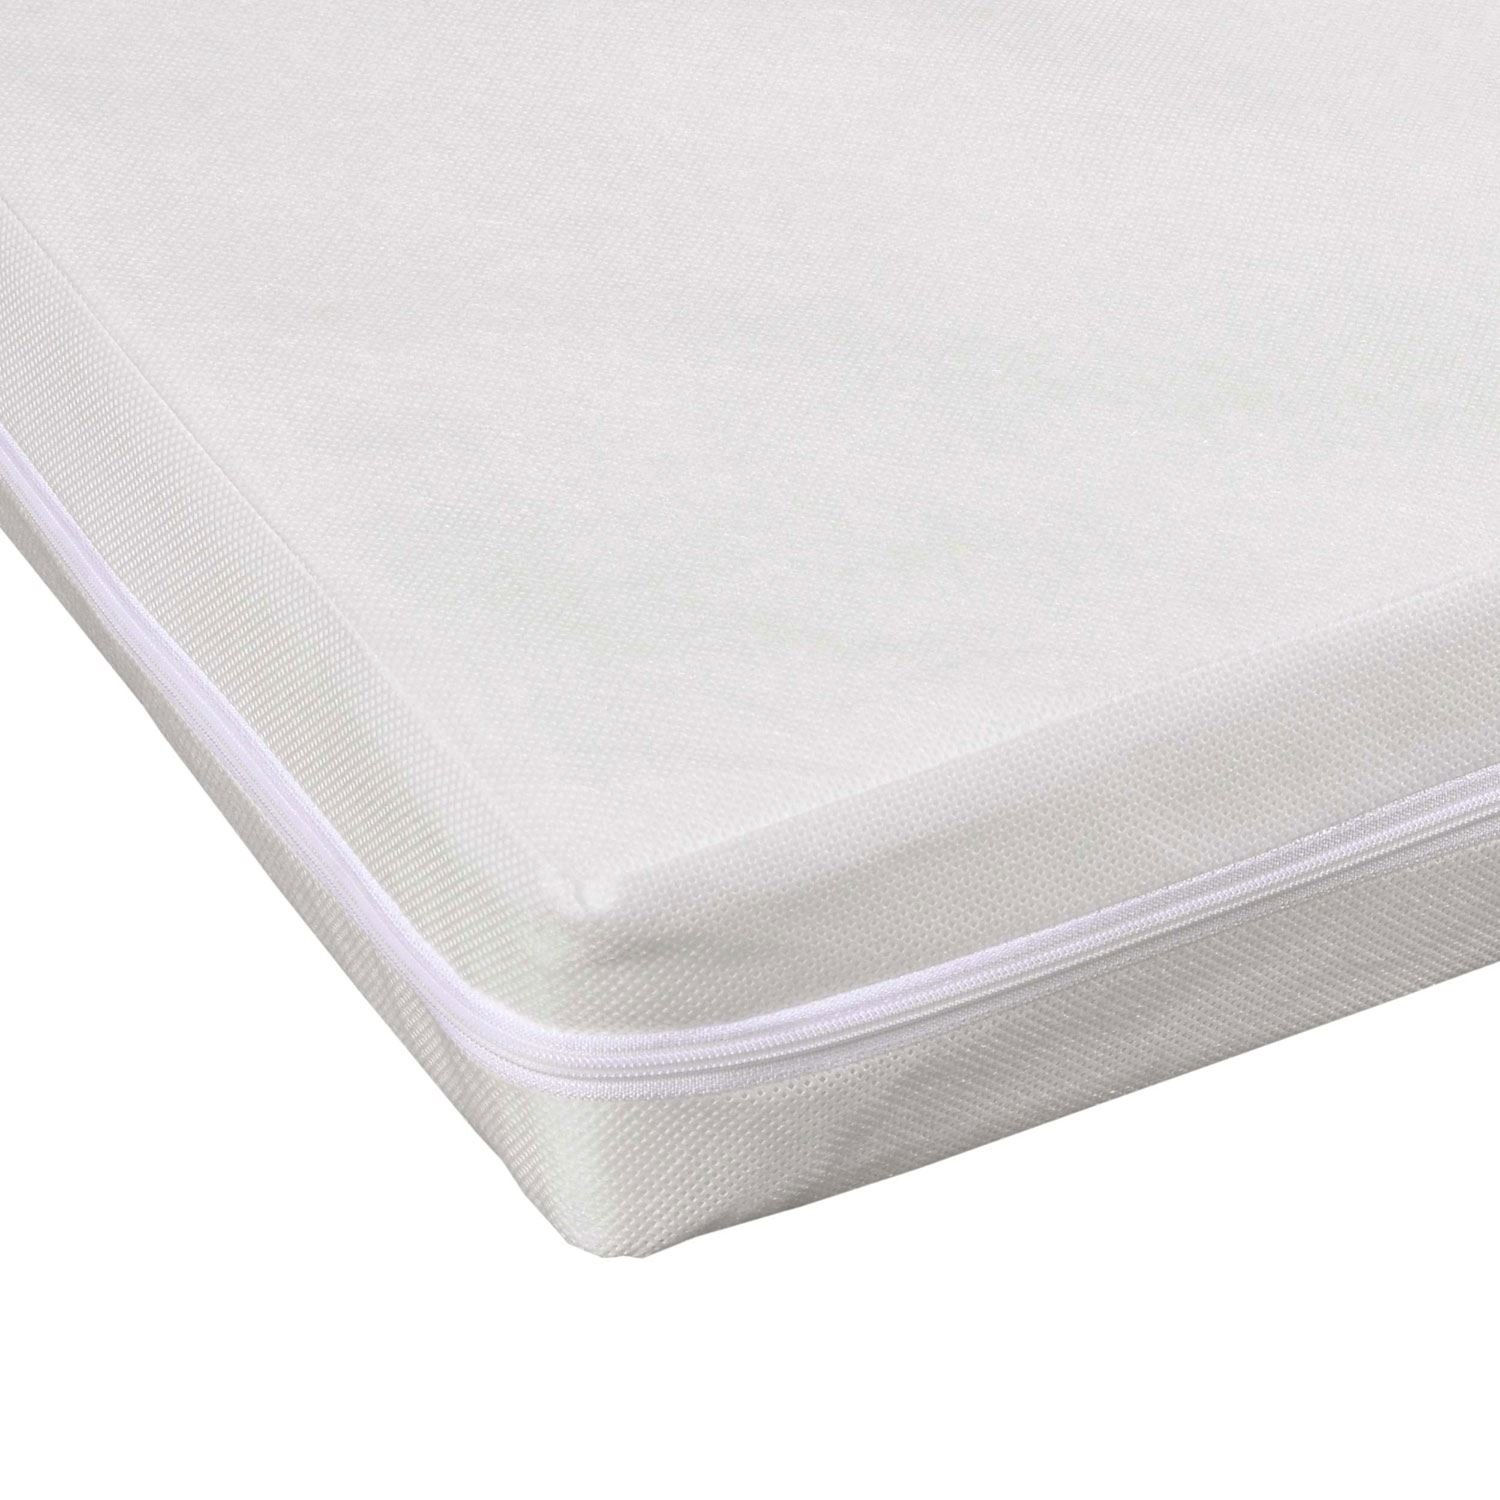 Homescapes Essential Comfort Cot Bed Hypo-allergenic Mattress wipe clean and washable cover 75mm deep, 70 x 140 cm (2'3.5' x 4'7') 70 x 140 cm (2' 3.5 x 4' 7)